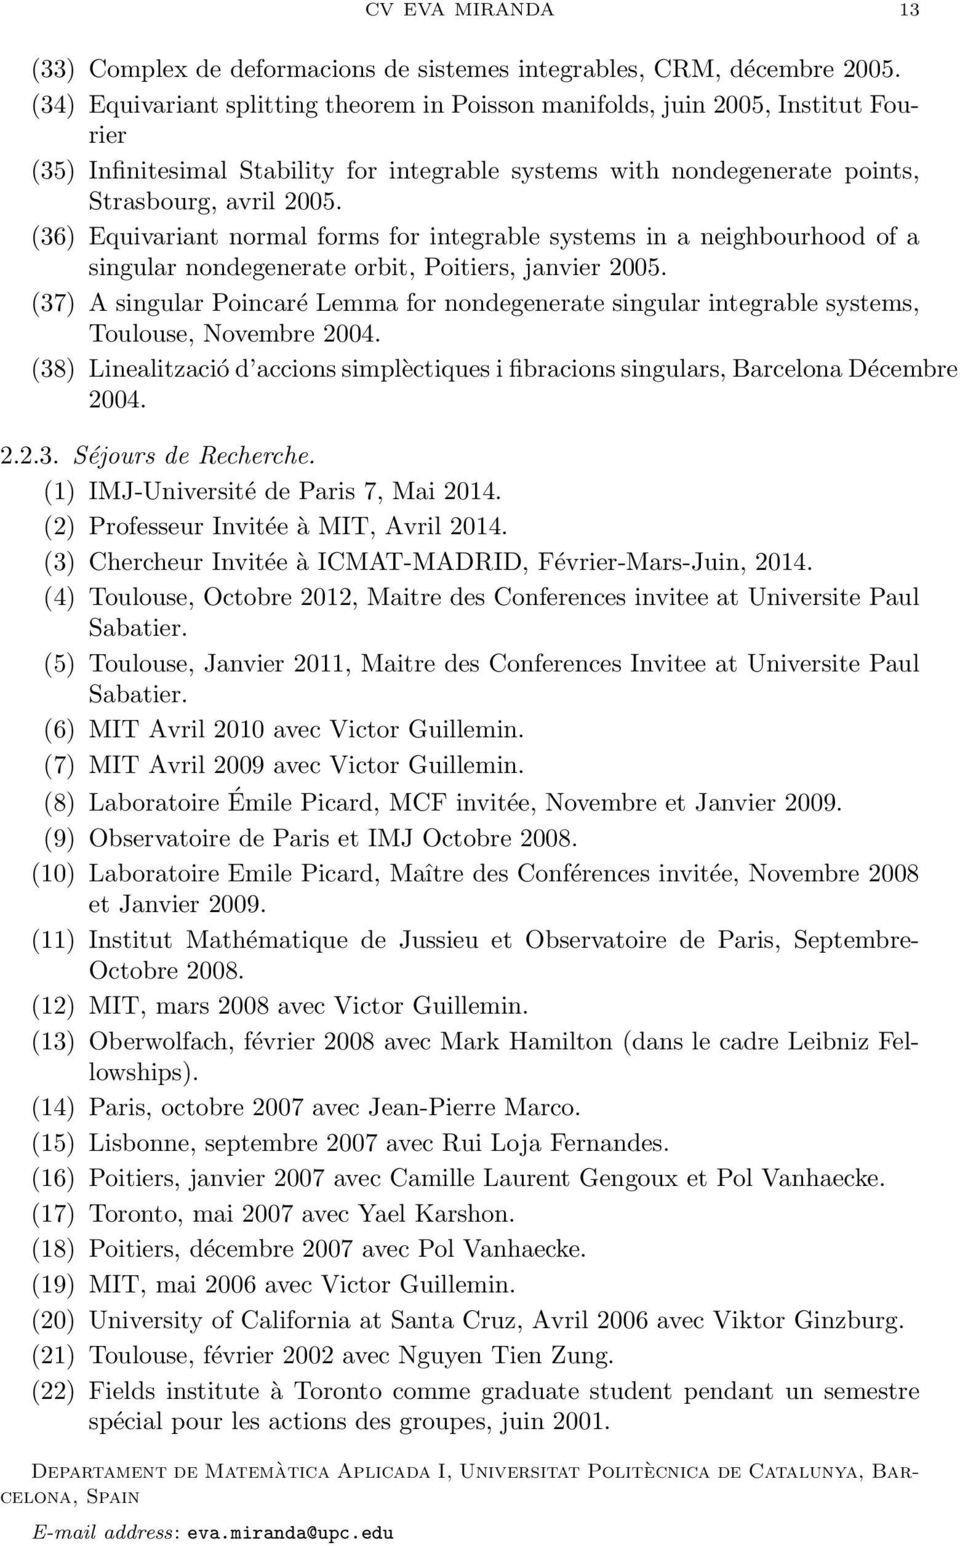 (36) Equivariant normal forms for integrable systems in a neighbourhood of a singular nondegenerate orbit, Poitiers, janvier 2005.